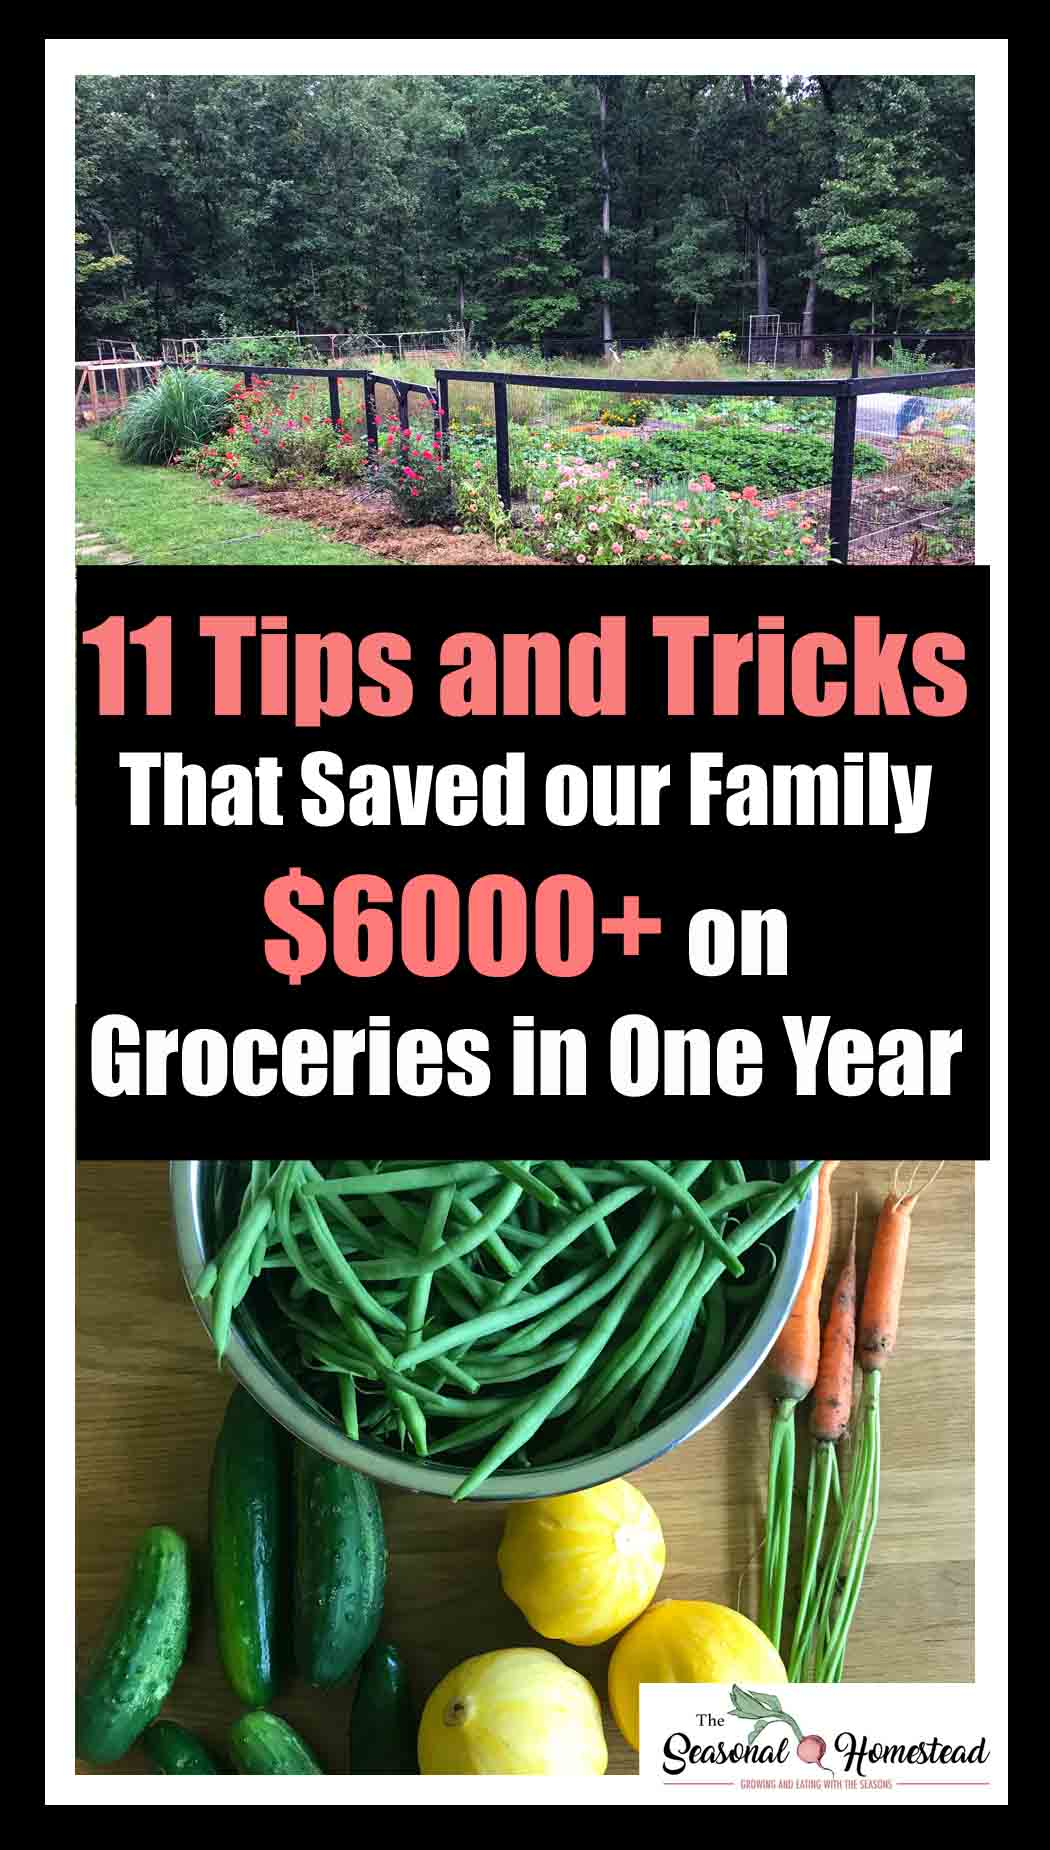 11 Tips and Tricks that Saved our Family 6000 on Groceries in One Year.jpg